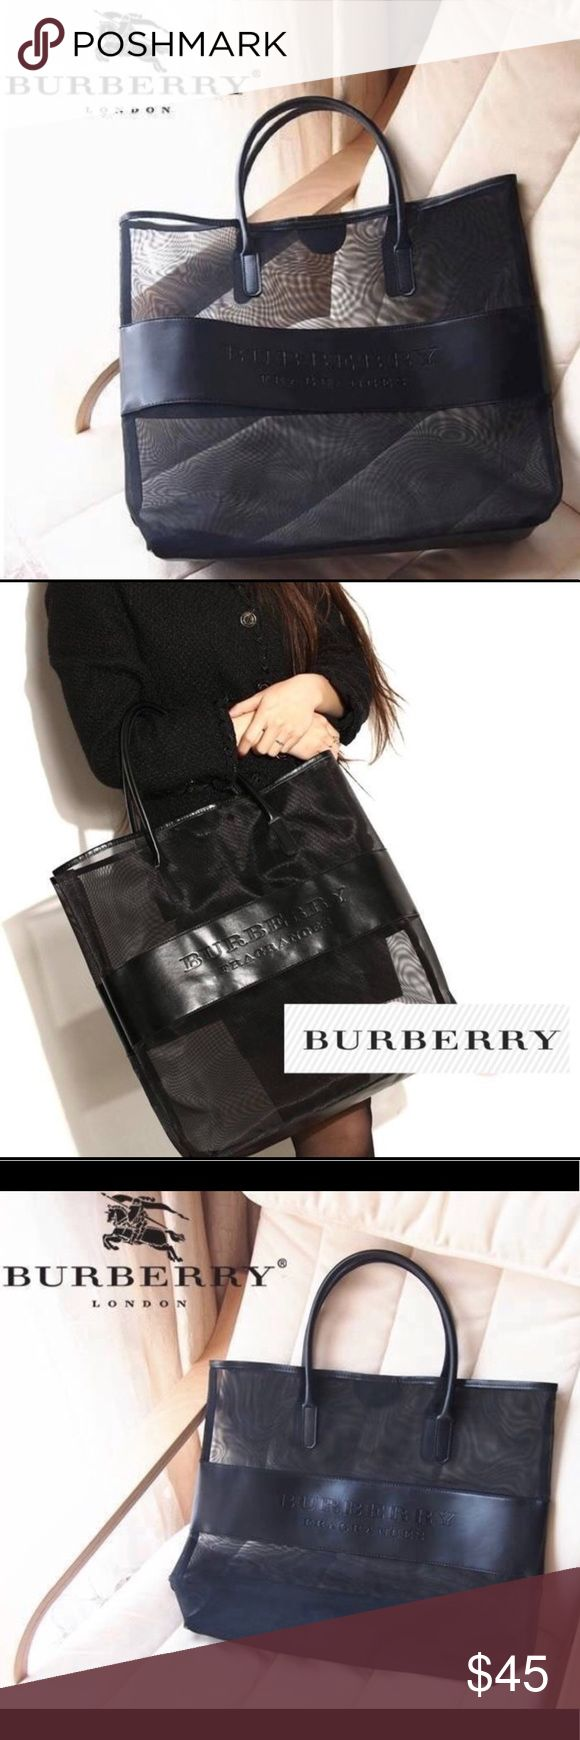 Burberry Tote New Burberry makeup Tote   Sturdy and versatile   Comes in original packaging  40 x 40 x 11cm Burberry Bags Cosmetic Bags & Cases